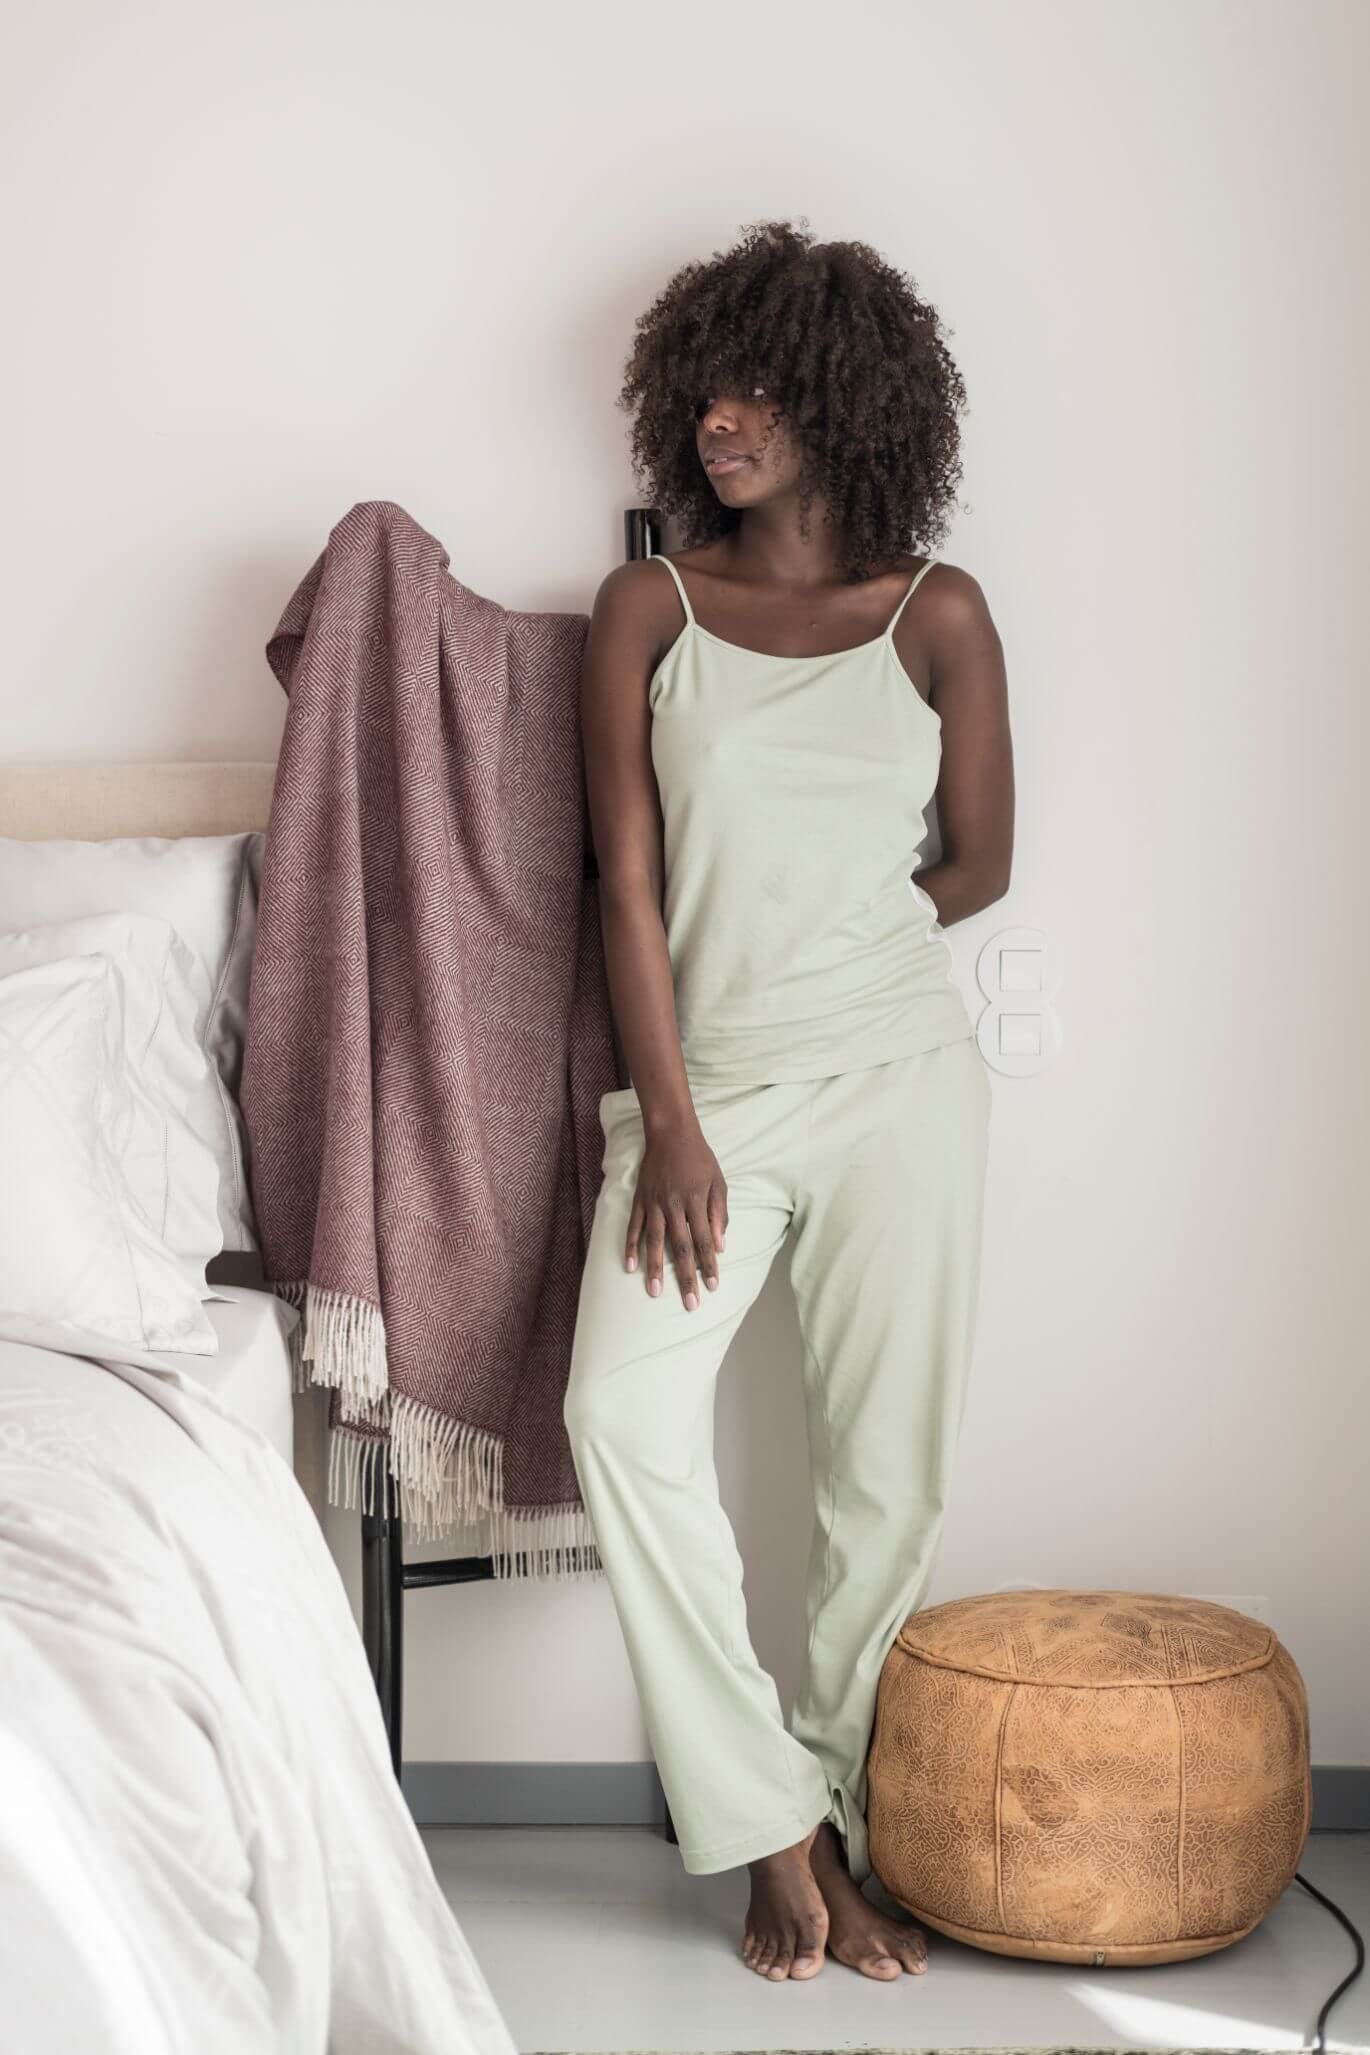 Women with Marialma green home wear